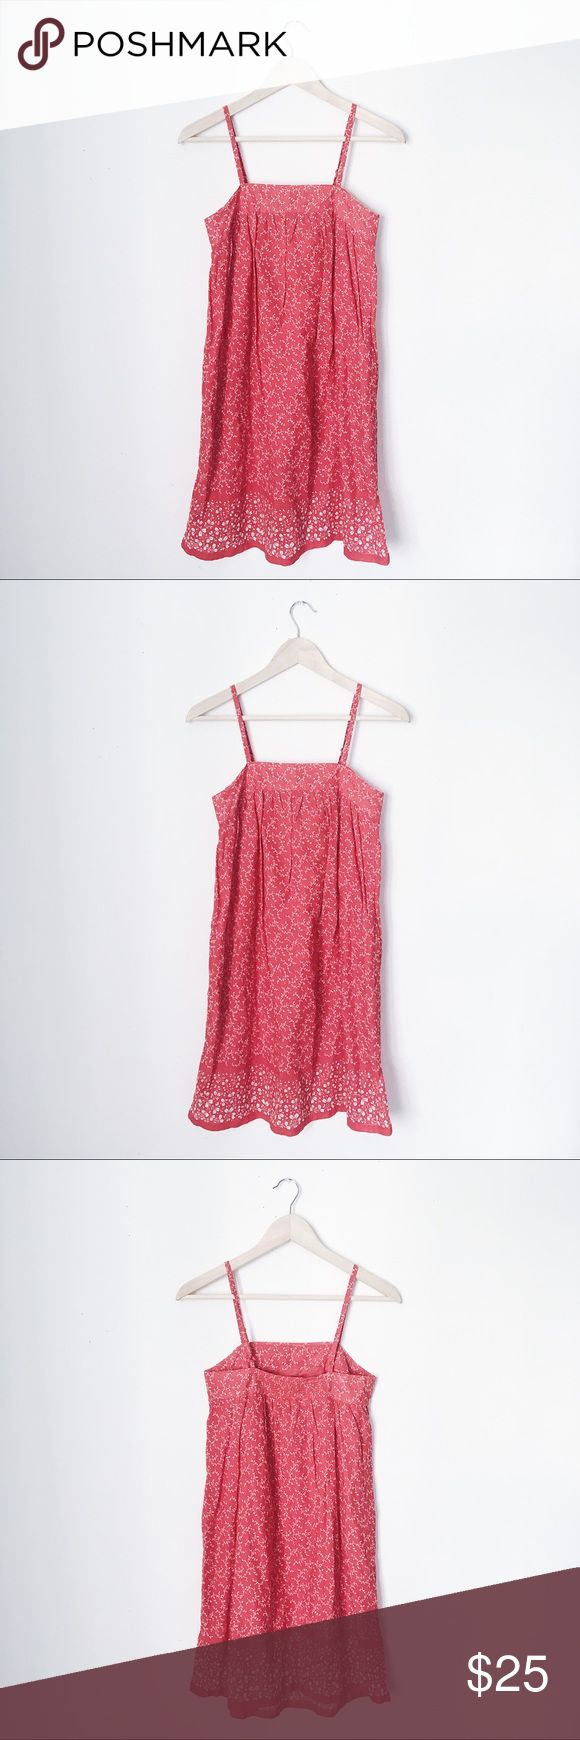 GAP FLORAL BRANCHES FEMININE DRESS BUST: 15 inches. LENGTH: 36 inches. GAP Dresses